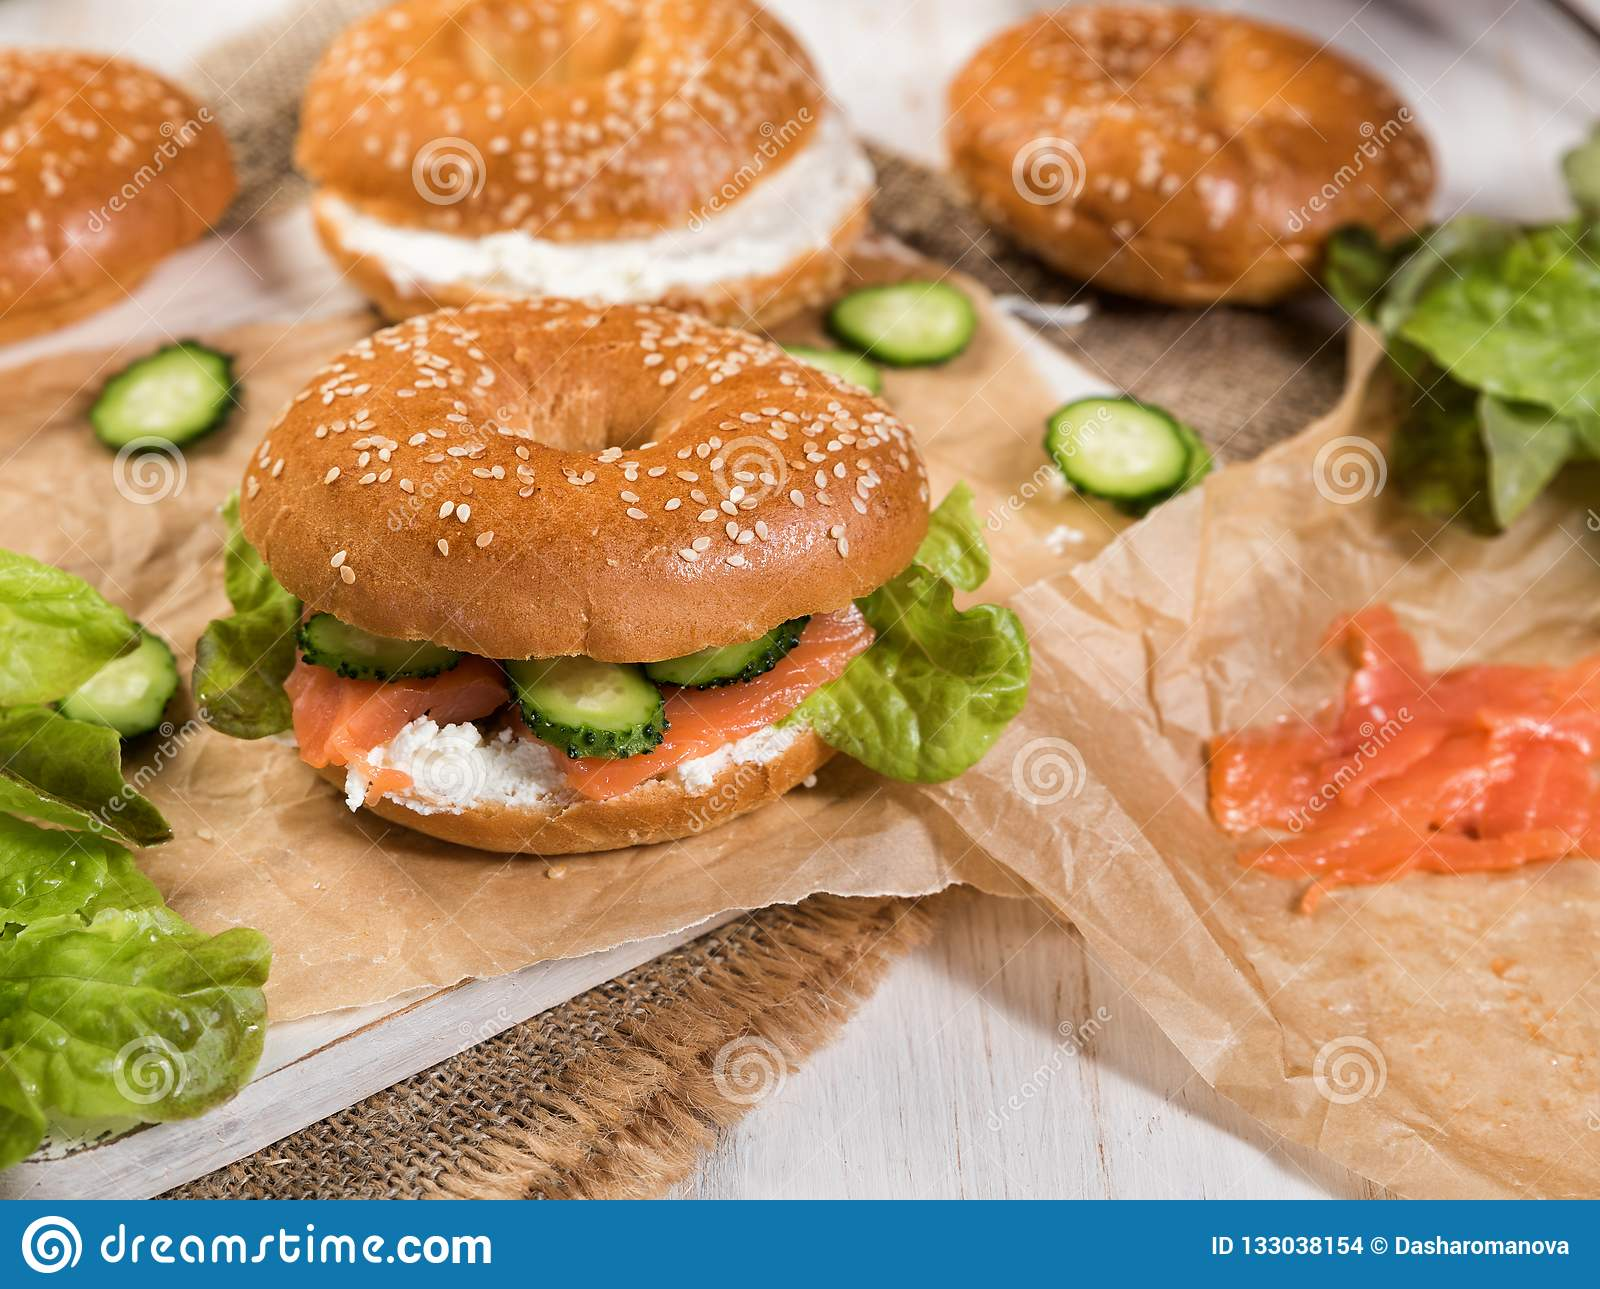 Fresh Homemade Bagel Sandwiches With Smoked Salmon Stock Photo